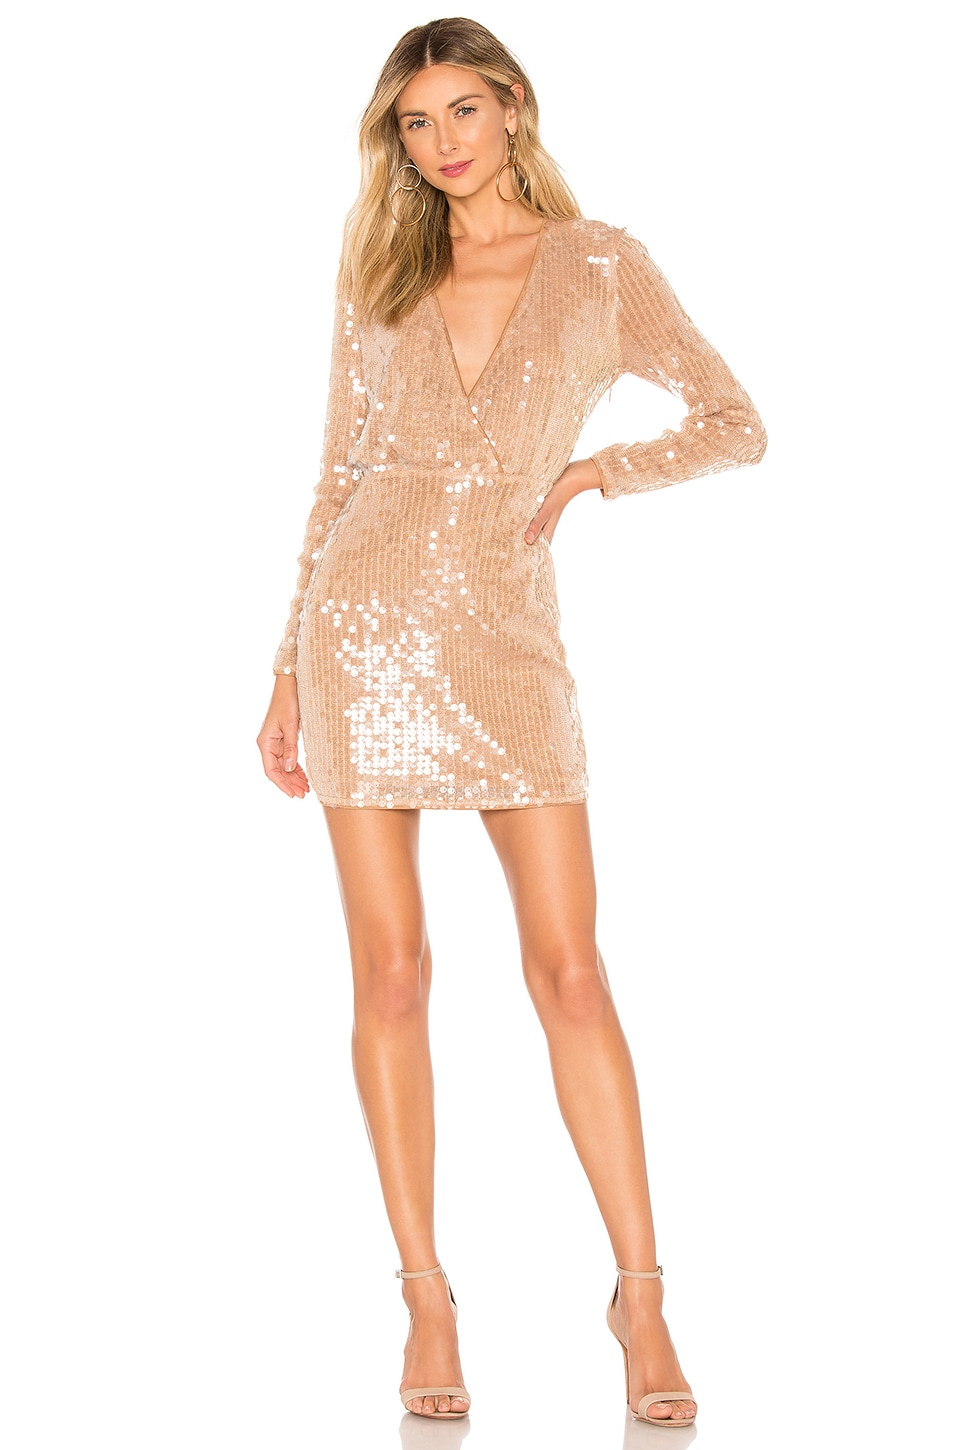 MAJORELLE Claudina Mini Dress in Blush Nude